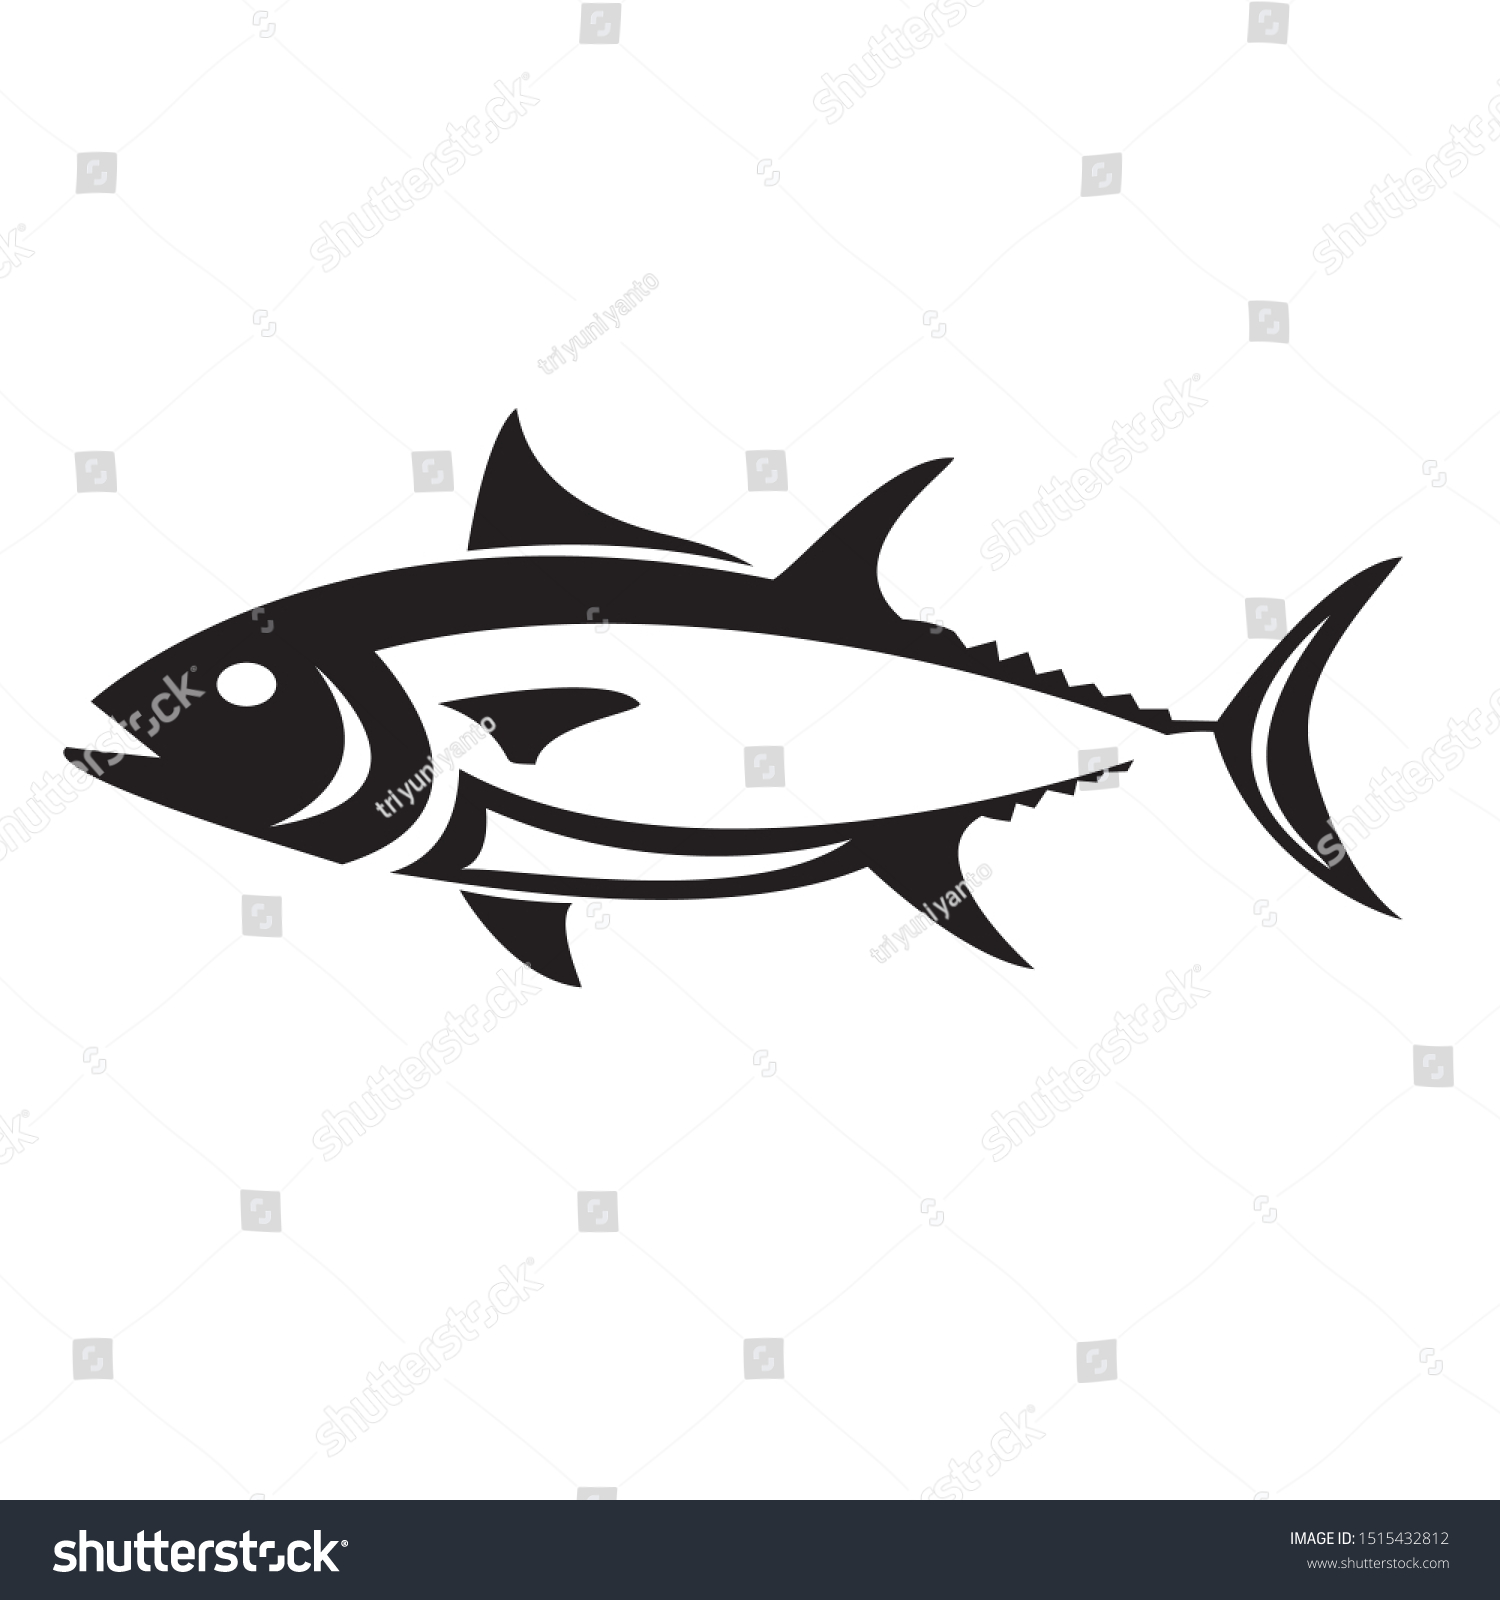 creative tuna fish vector logo stock vector royalty free 1515432812 https www shutterstock com image vector creative tuna fish vector logo 1515432812